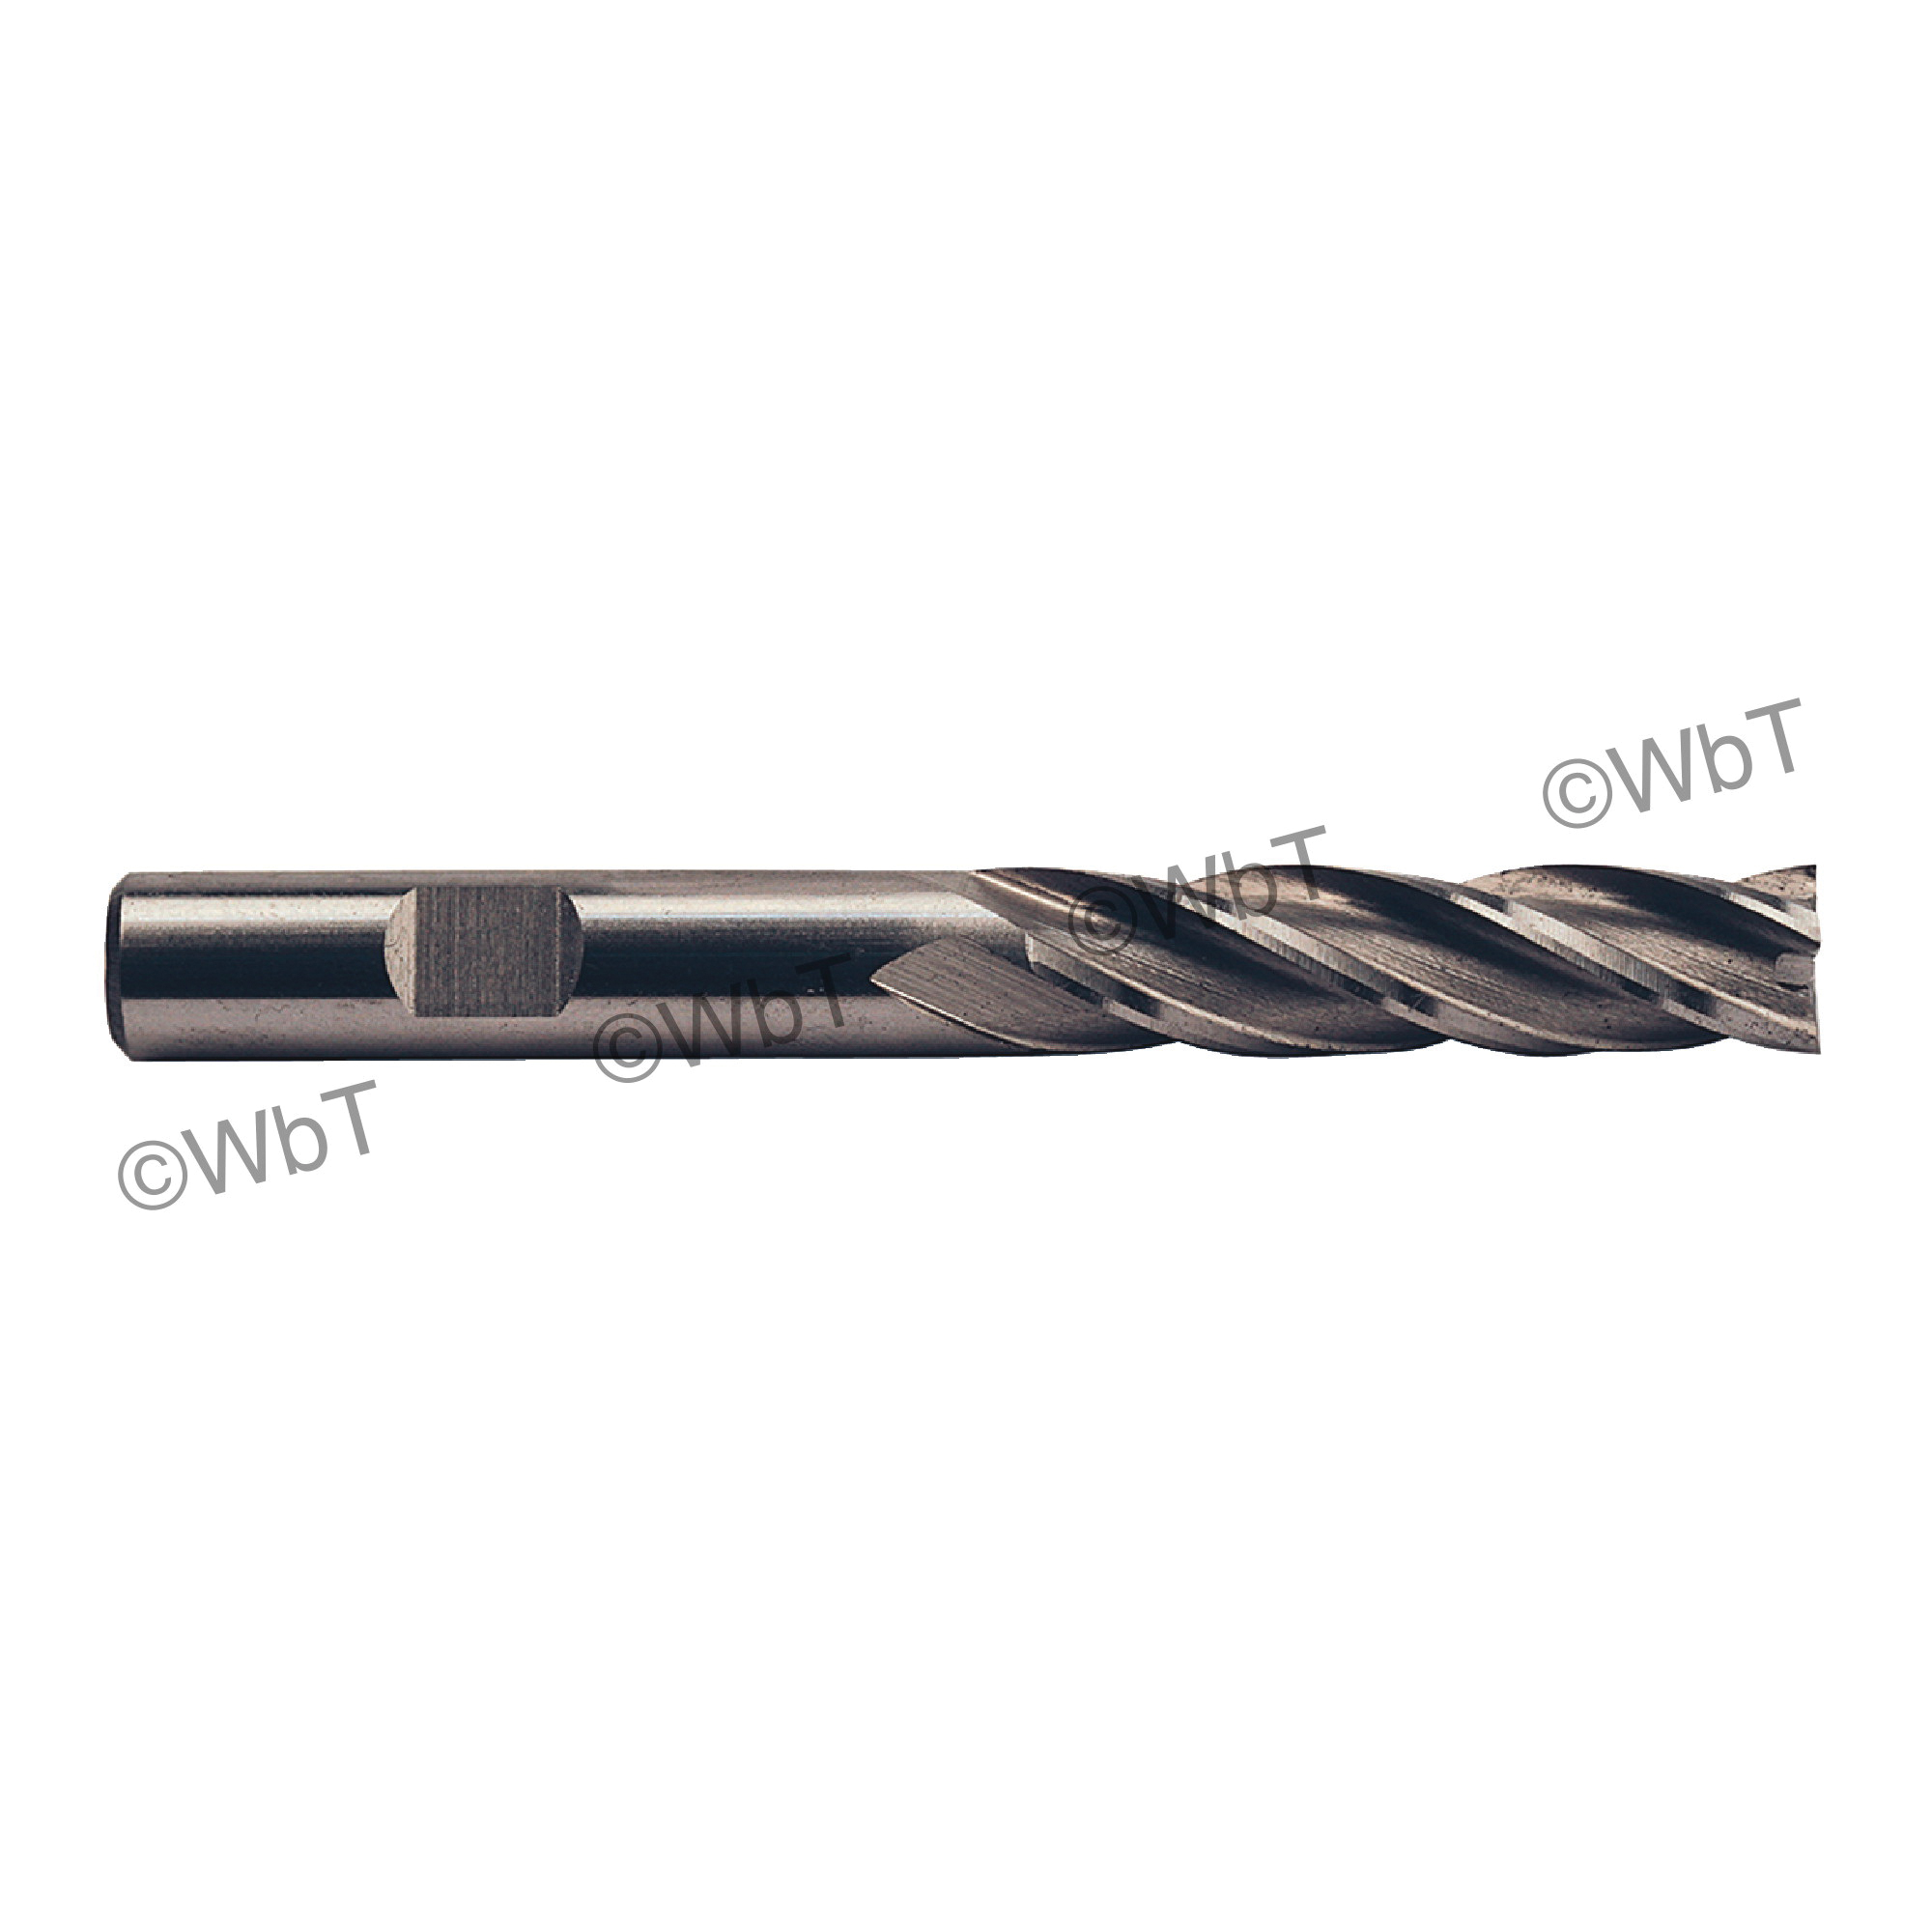 TTC 08-016-020 D6 Center Cutting Long Length Single End Mill, 1/4 in Dia Cutter, 1-1/4 in Length of Cut, 4 Flutes, 3/8 in Dia Shank, 3-1/16 in OAL, Bright